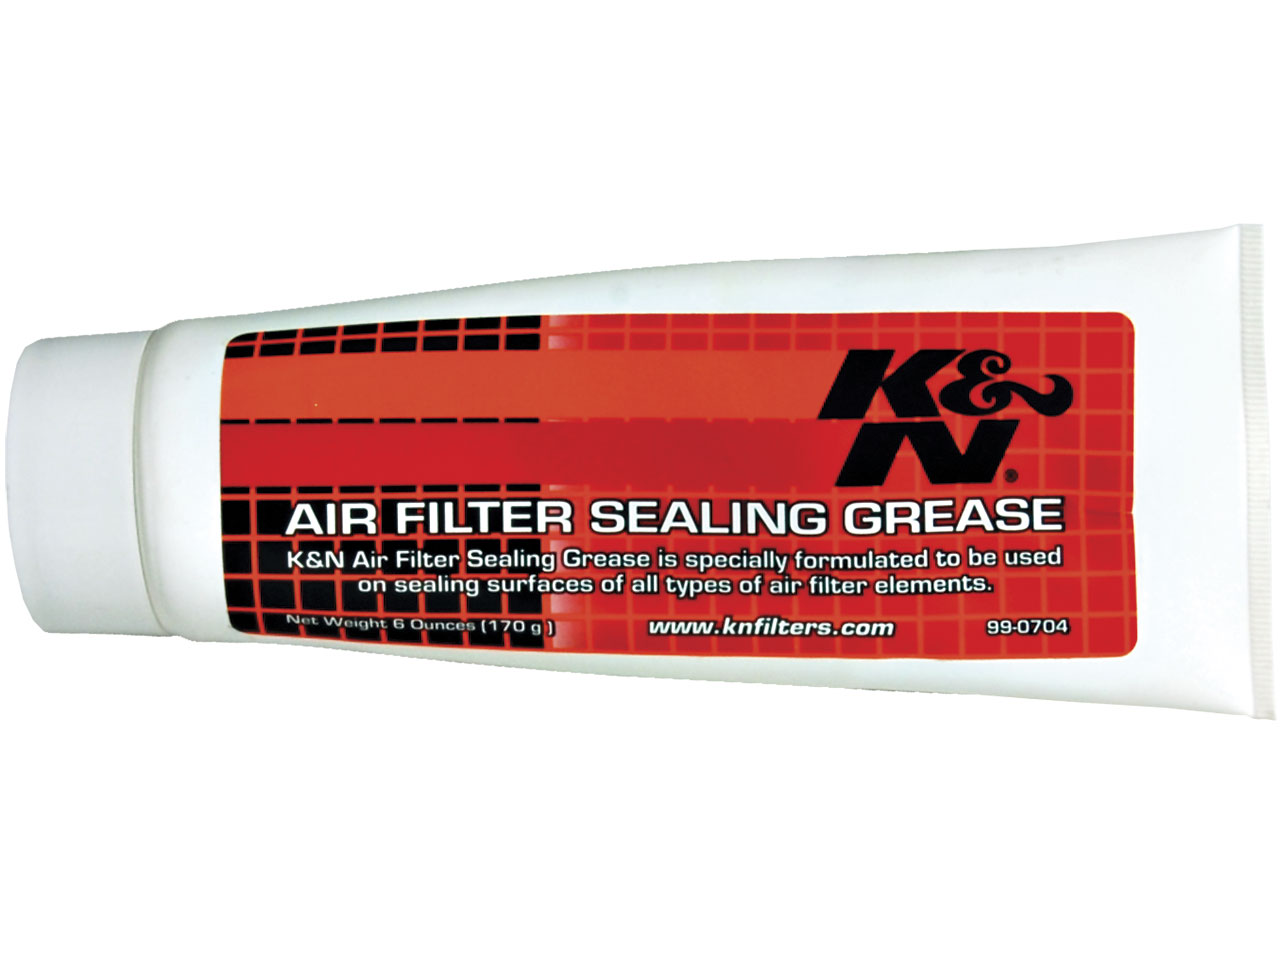 Picture of K&N Sealing Grease